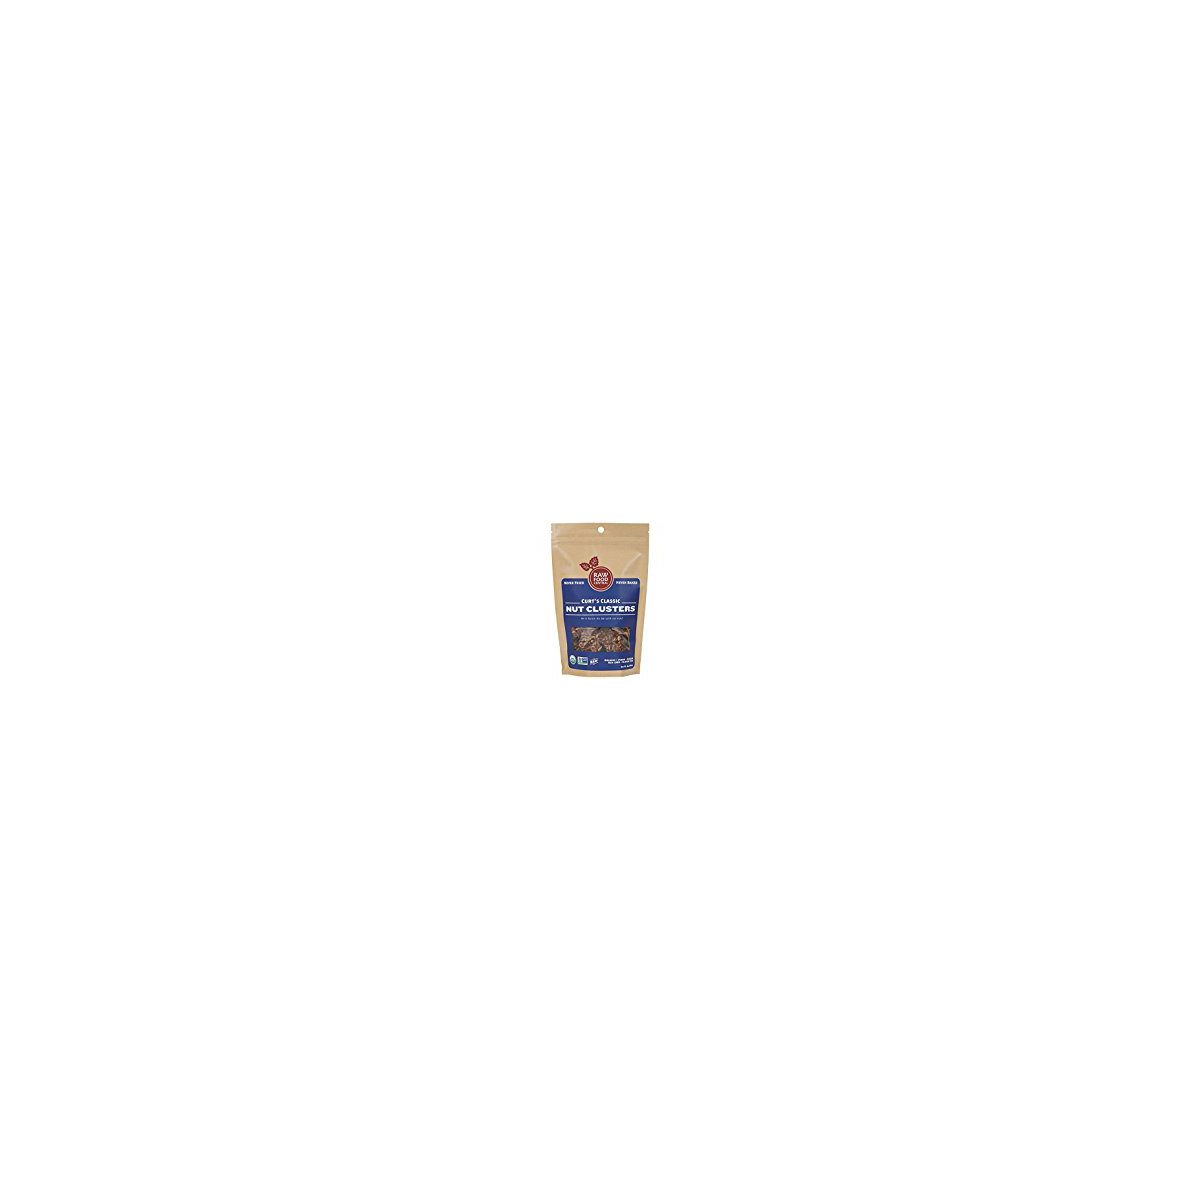 Raw Food Central Nut Cluster, Organic, Curt Clsc (Case of 8 3.5 oz) by Raw Food Central